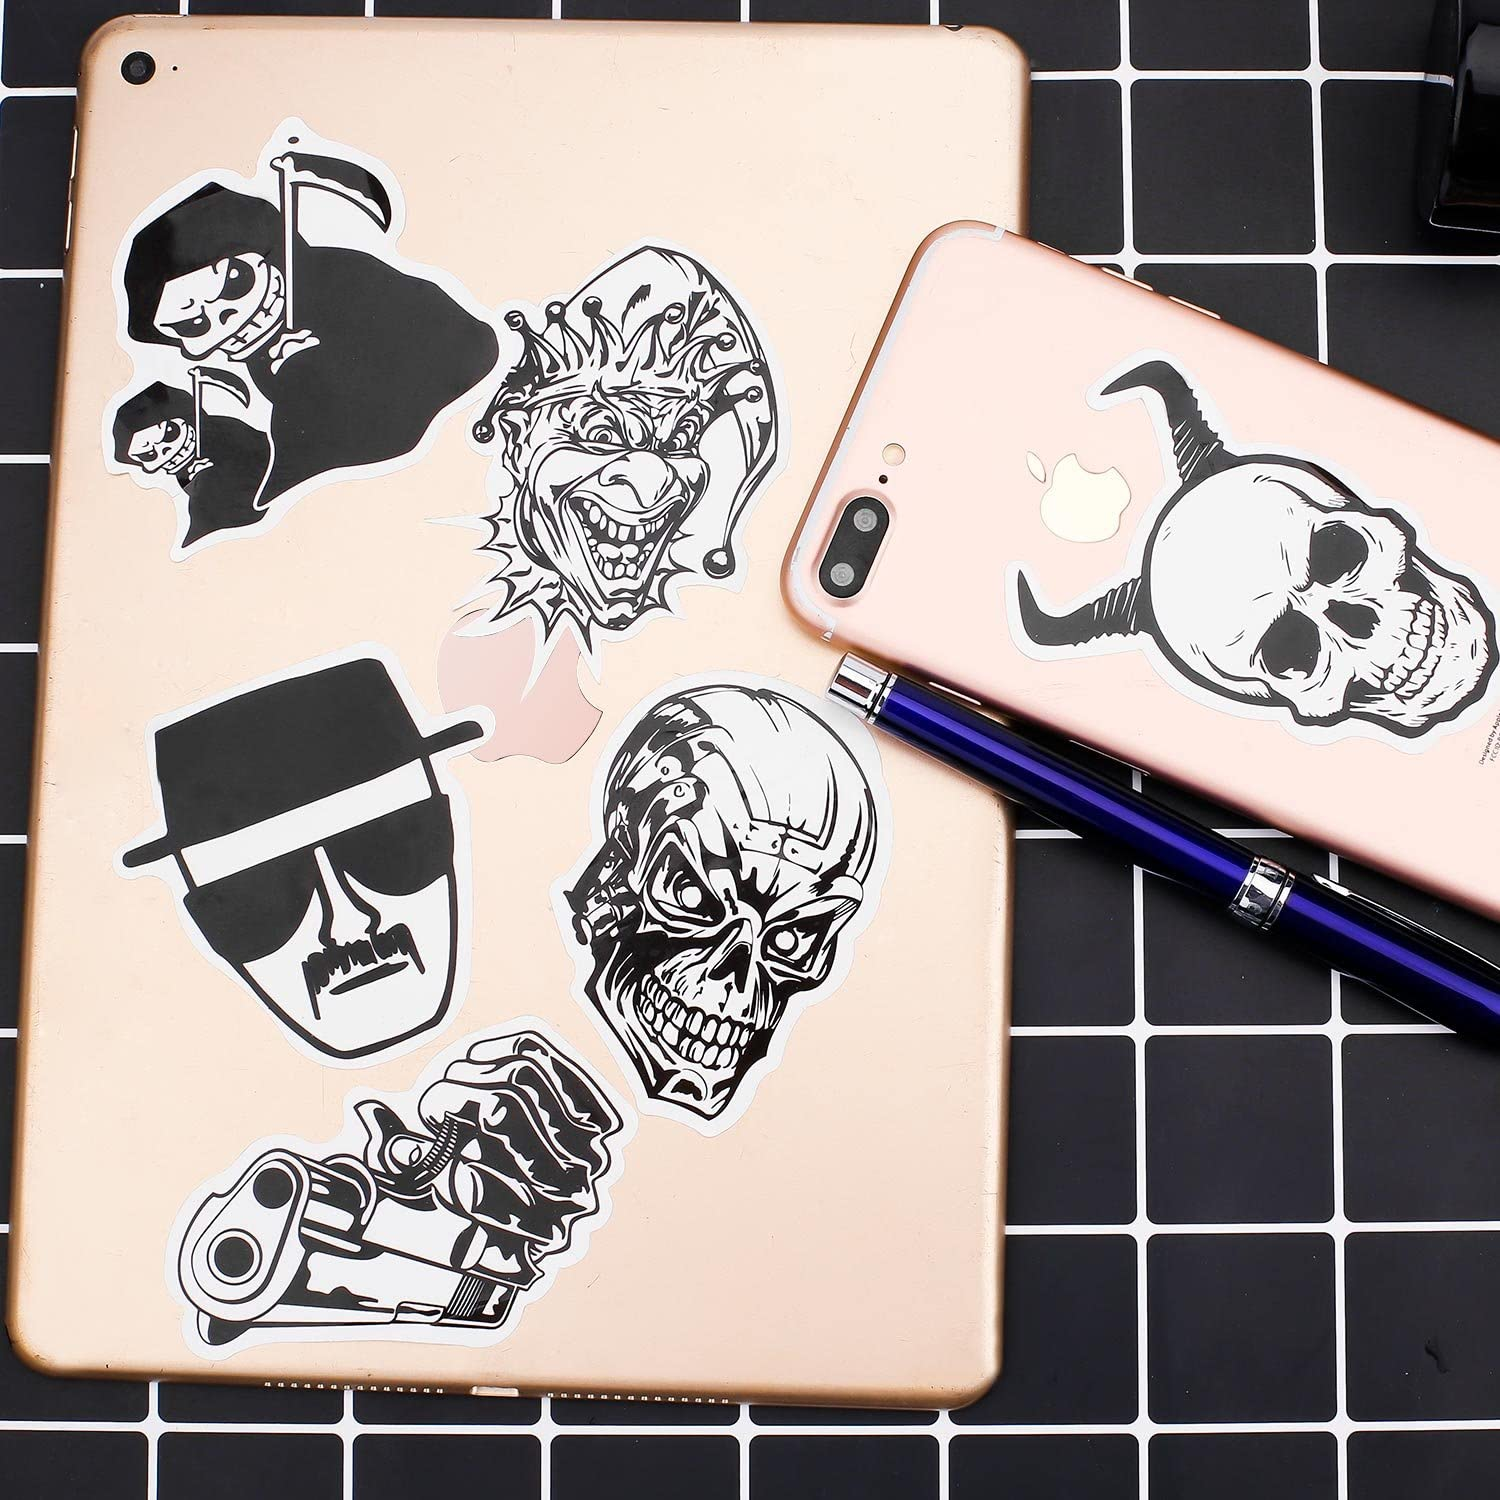 PROMENE 120 Pieces Stickers Vinyl Laptop Stickers for Car Motorcycle Bicycle Luggage Graffiti Patches Skateboard Wall Deacls